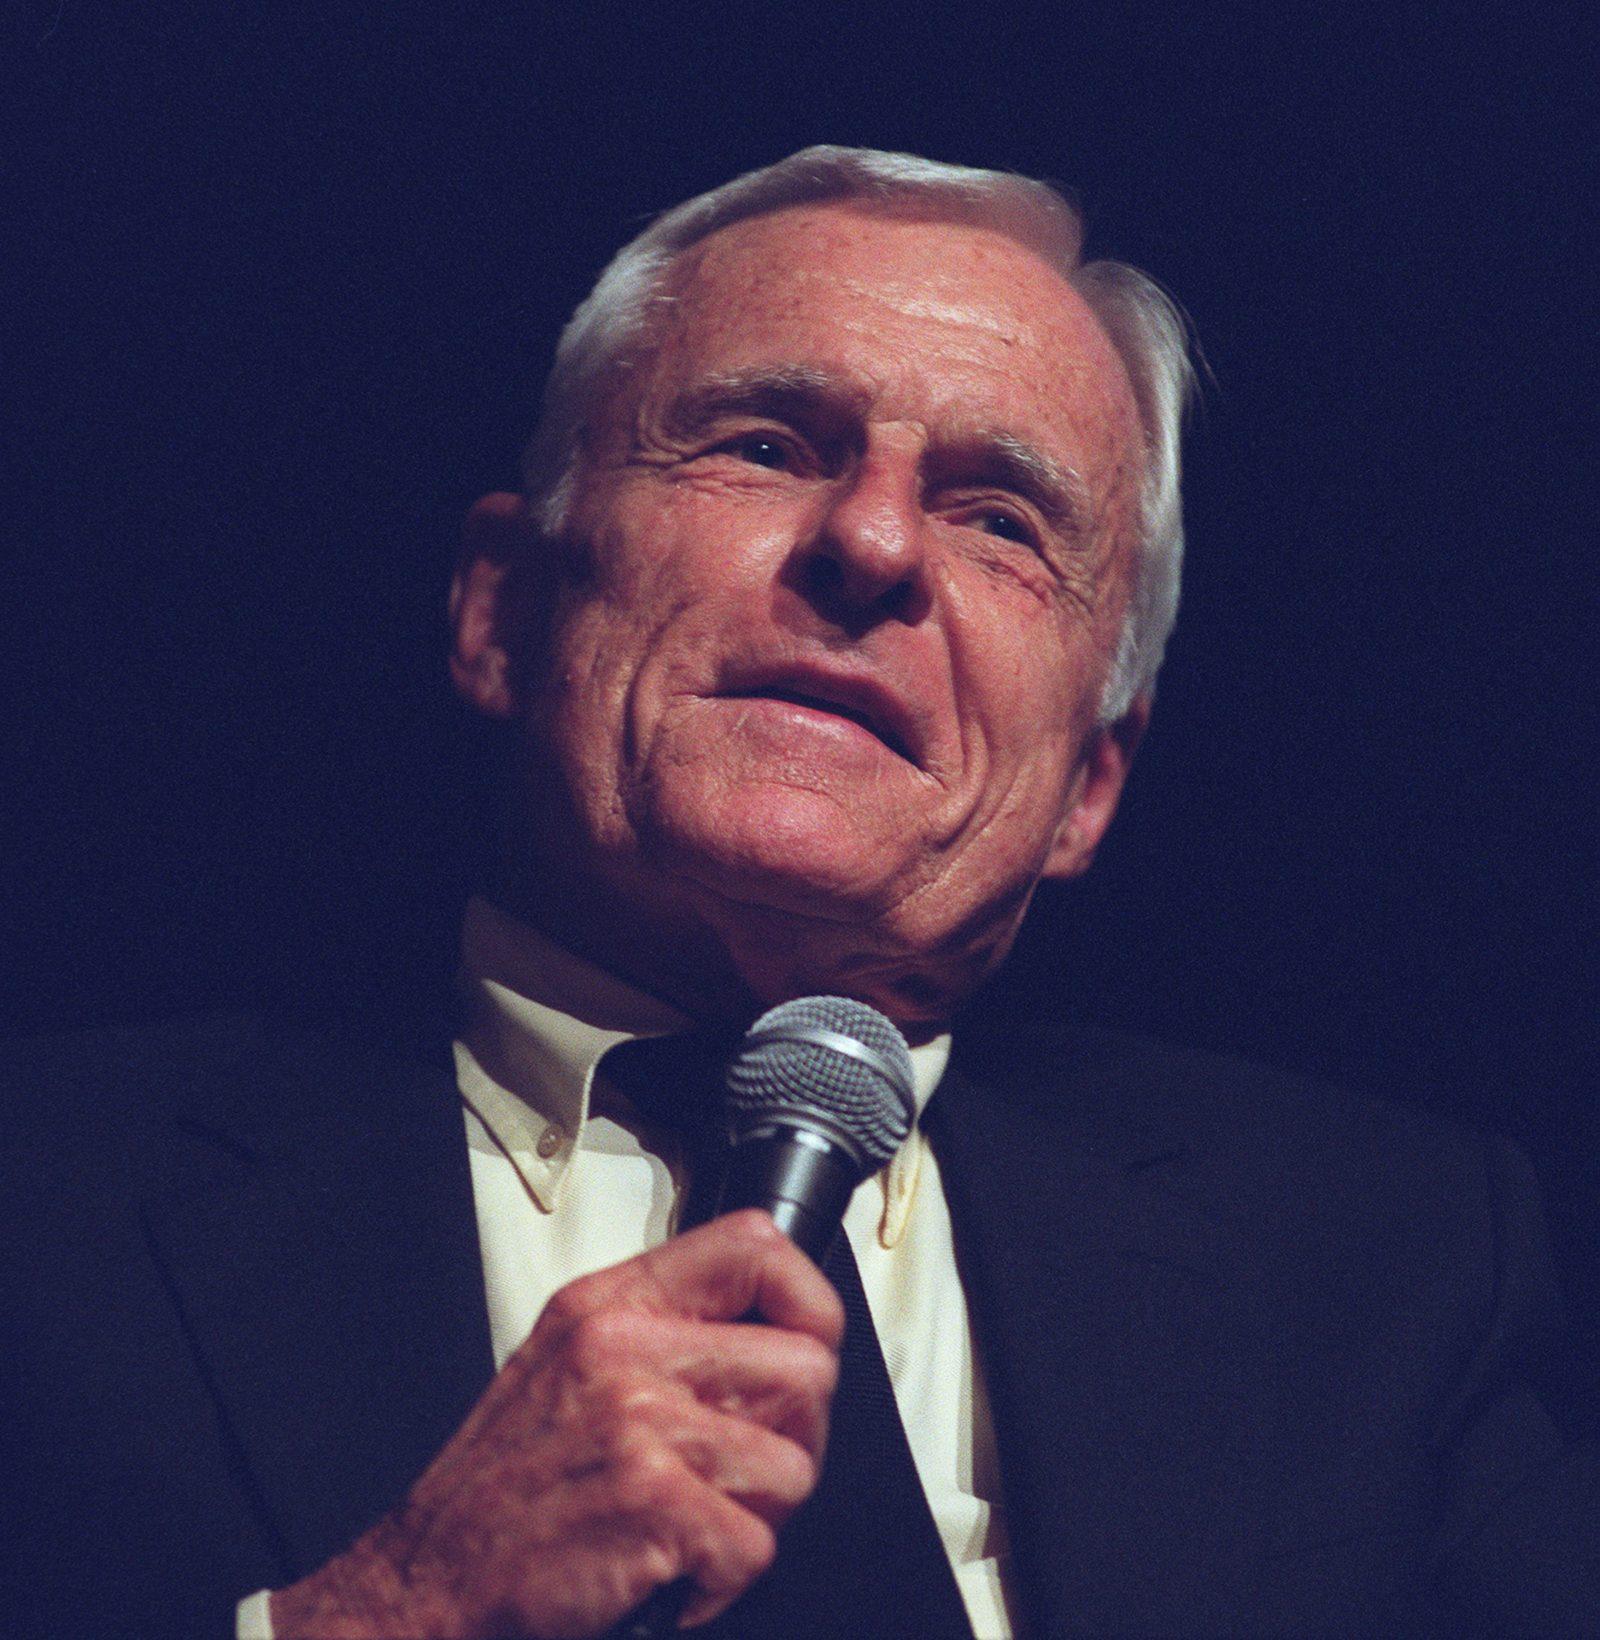 Grant Tinker, the former chairman of NBC, died last month. (Perry C. Riddle/Los Angeles Times/TNS)